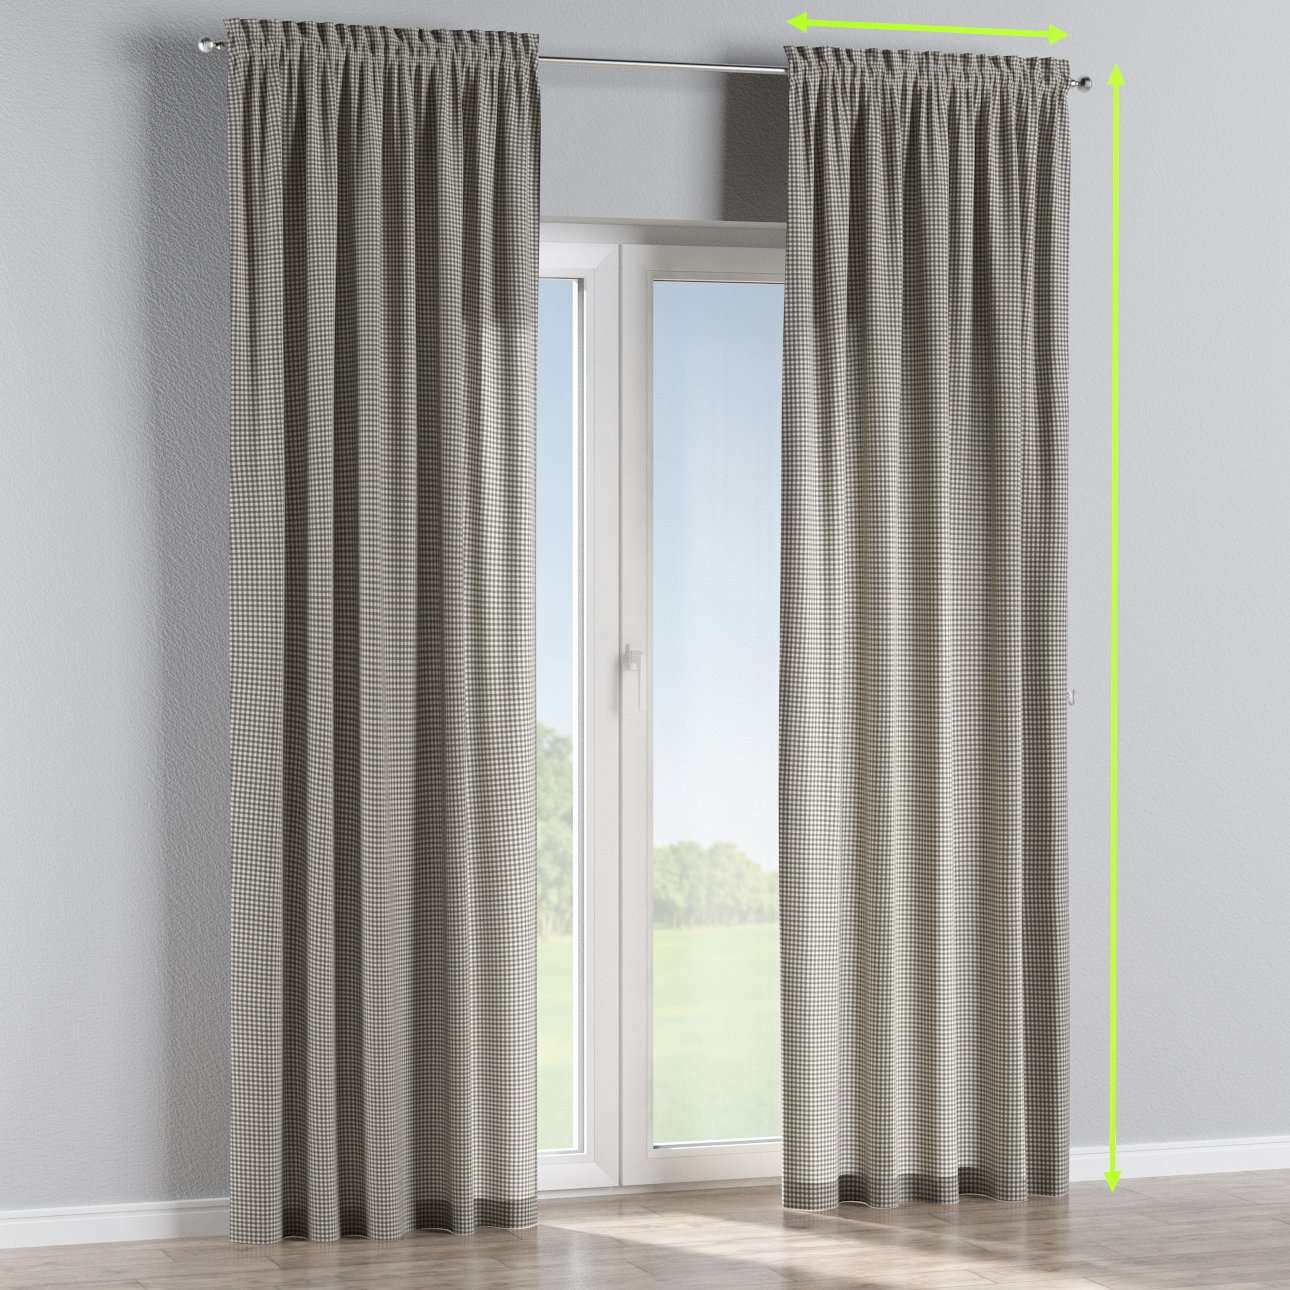 Slot and frill lined curtains in collection Quadro, fabric: 136-10